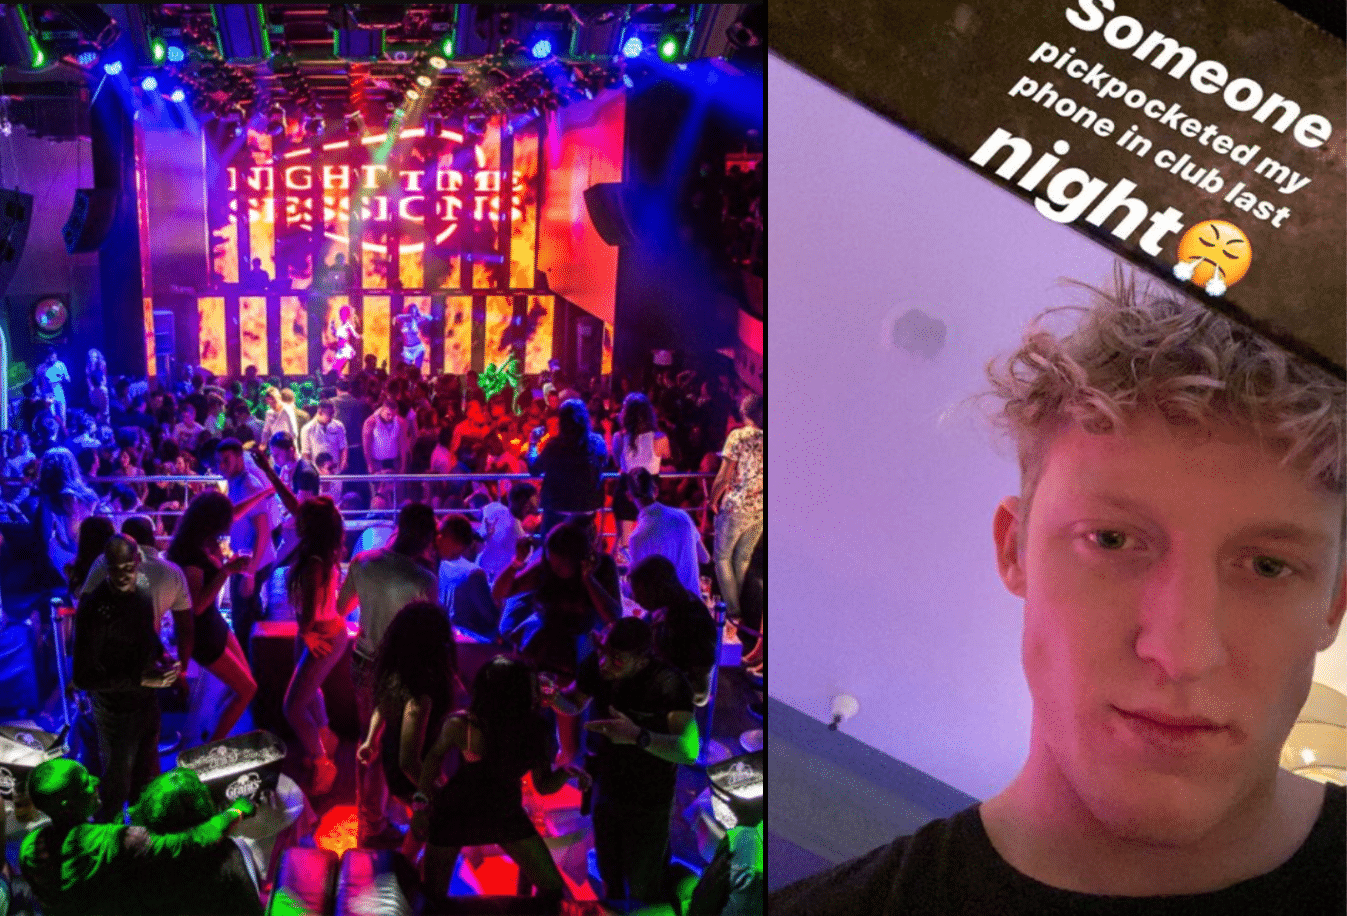 Tfue got pickpocketed in Miami Club after getting robbed a day earlier